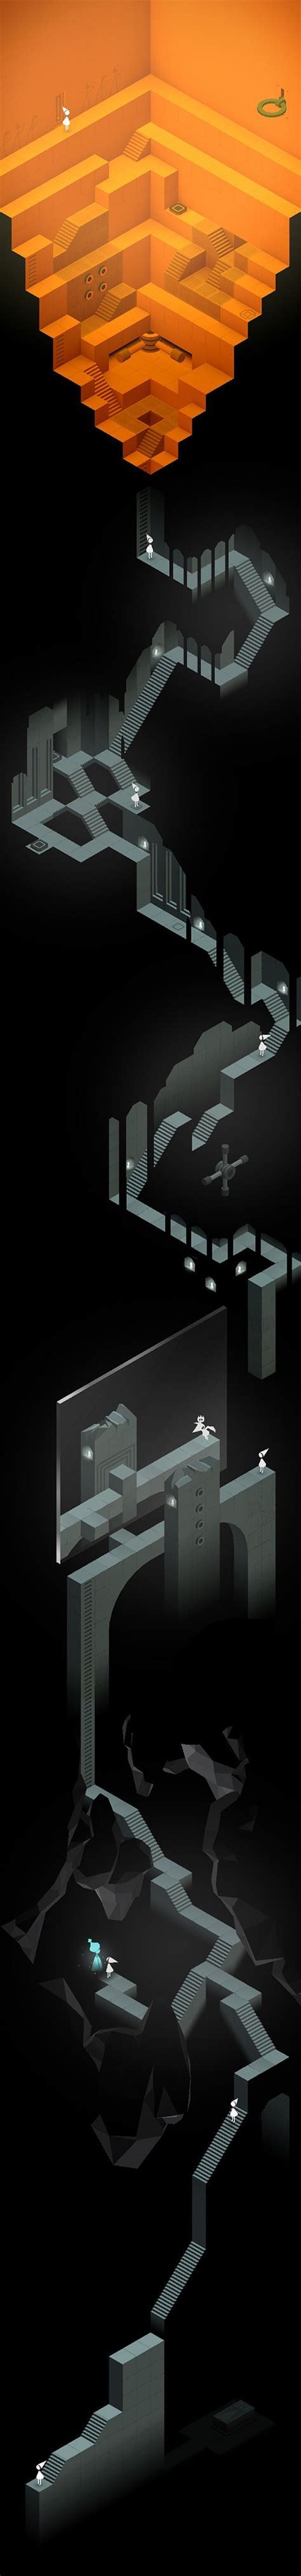 game wallpaper vertical monument valley game the descent chapter ix full